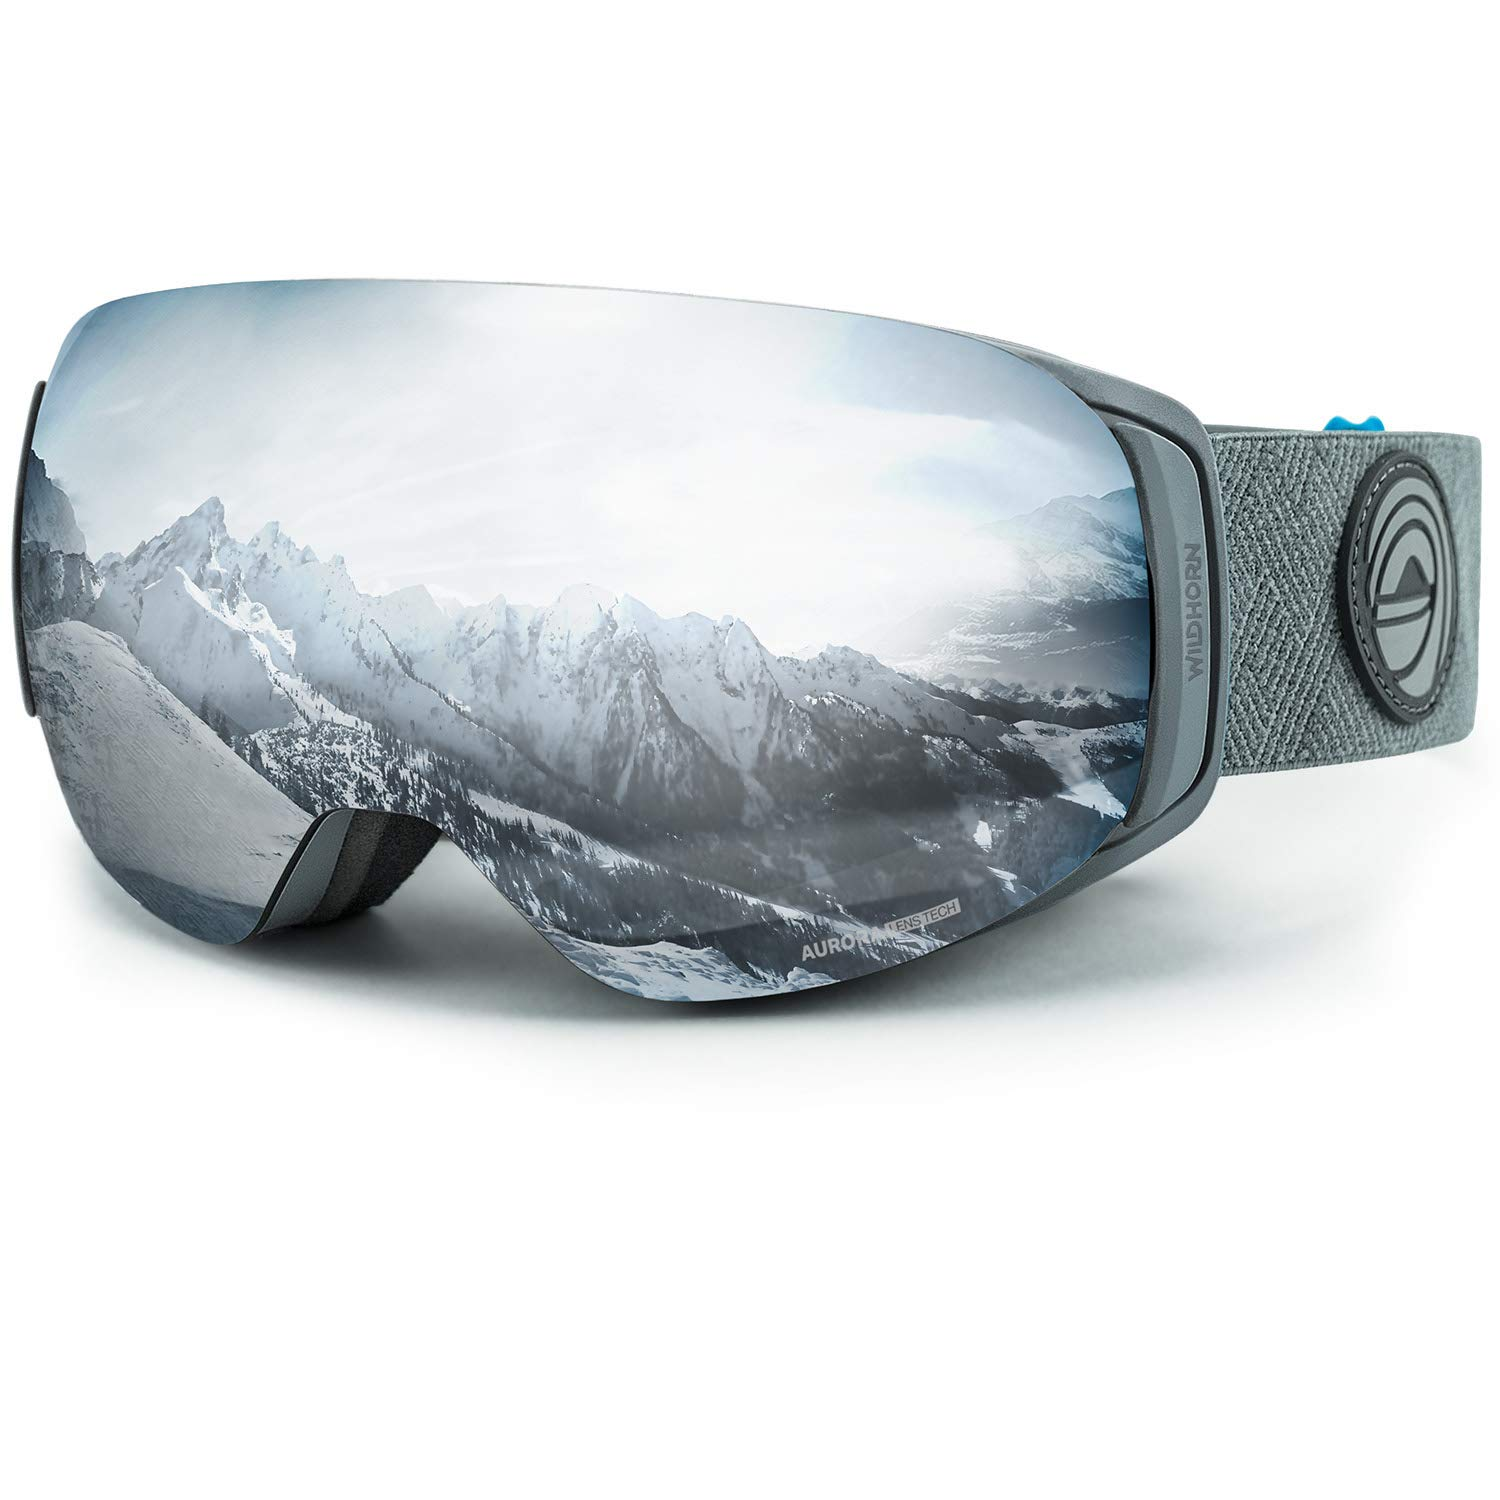 Wildhorn Roca Snowboard & Ski Goggles - US Ski Team Official Supplier - Premium Magnetic Snow Goggles by WildHorn Outfitters